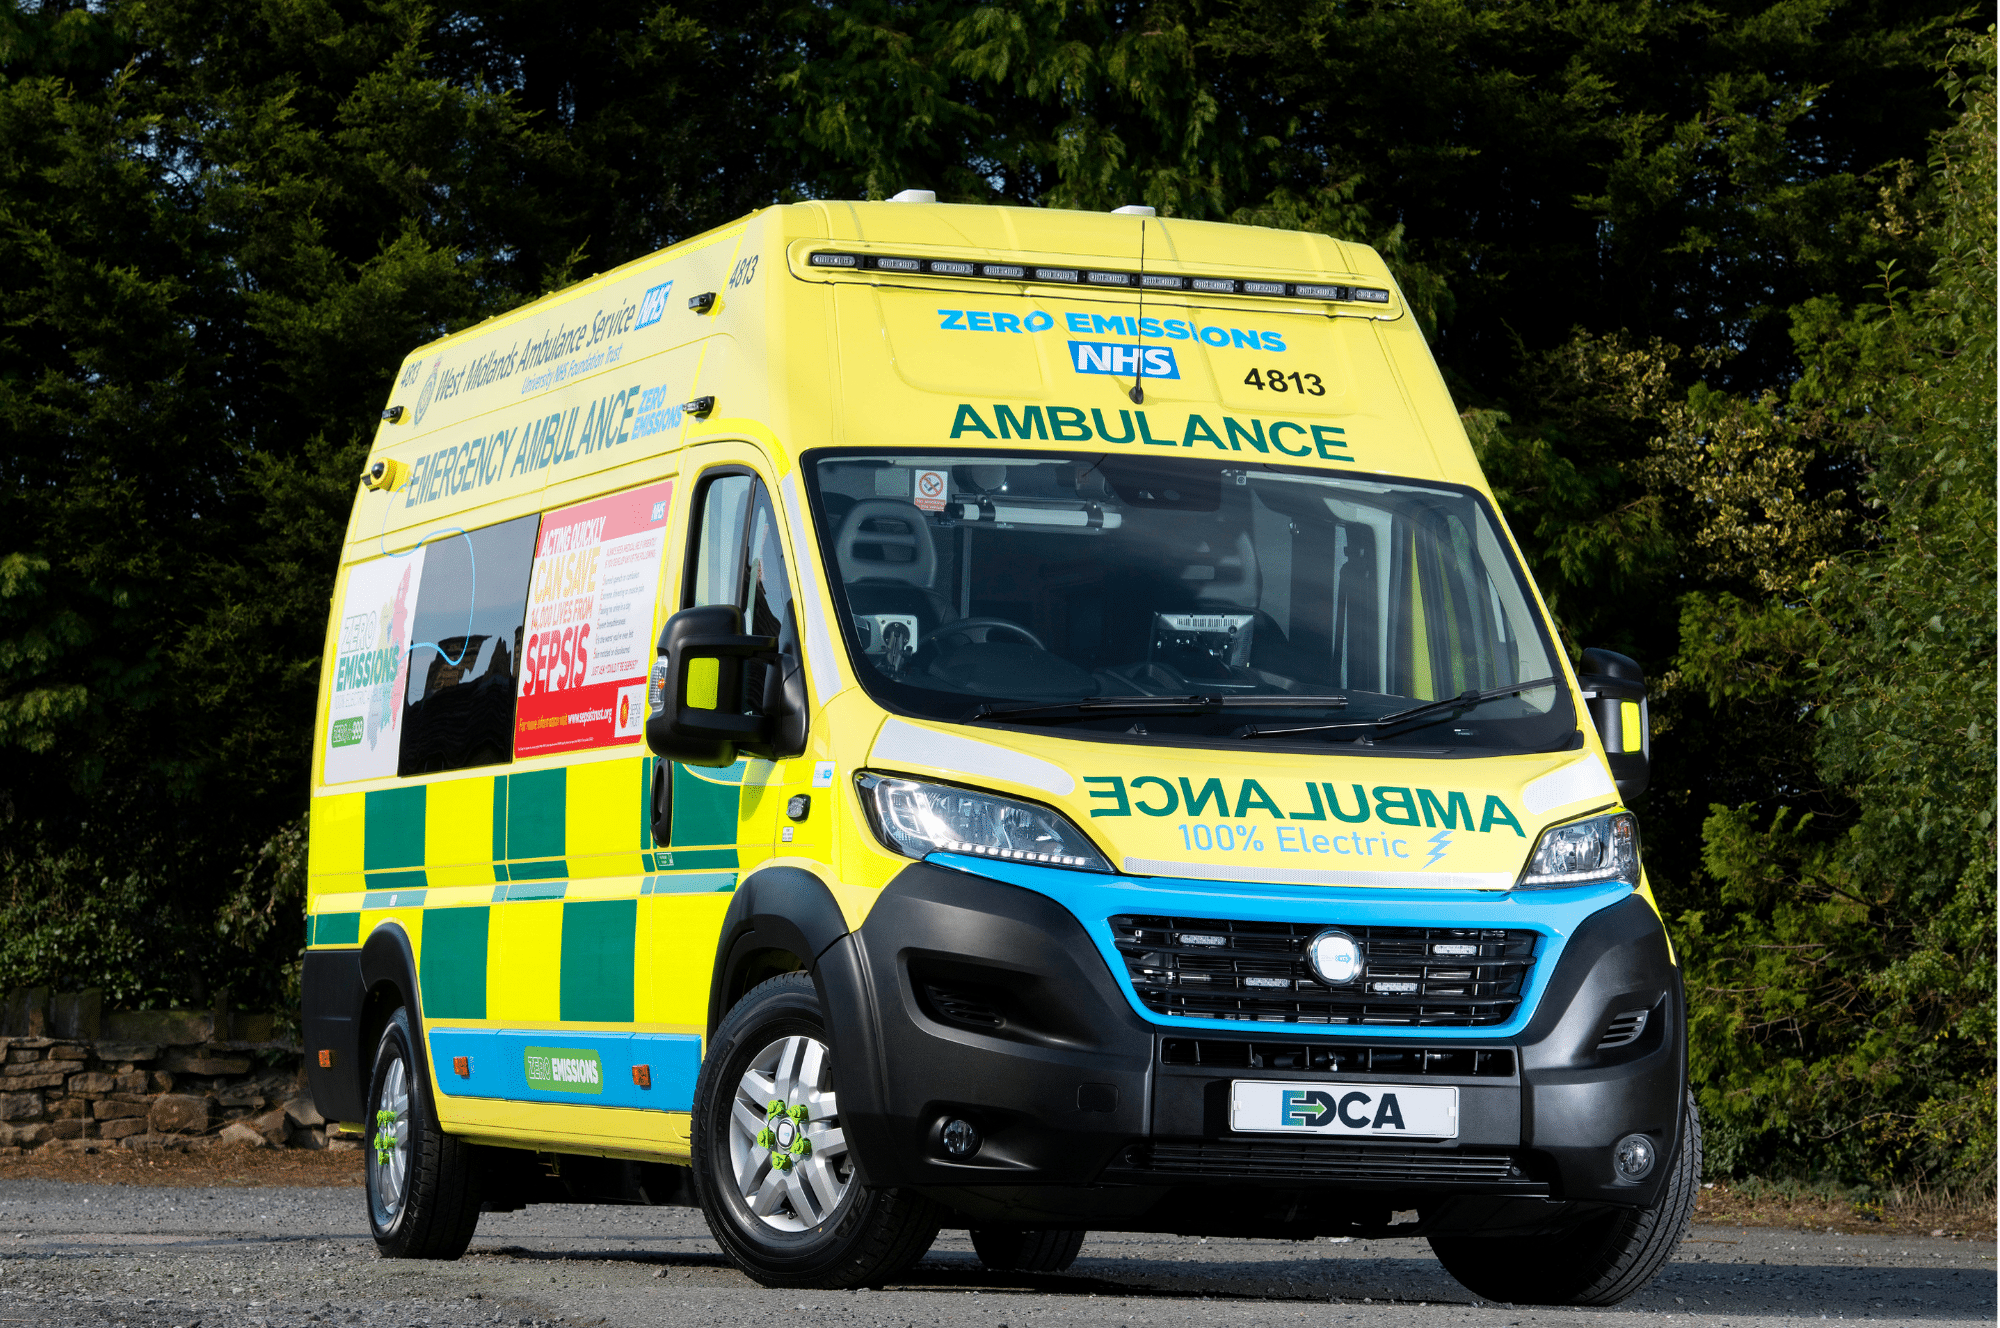 innovative video telematics wmas ambulance